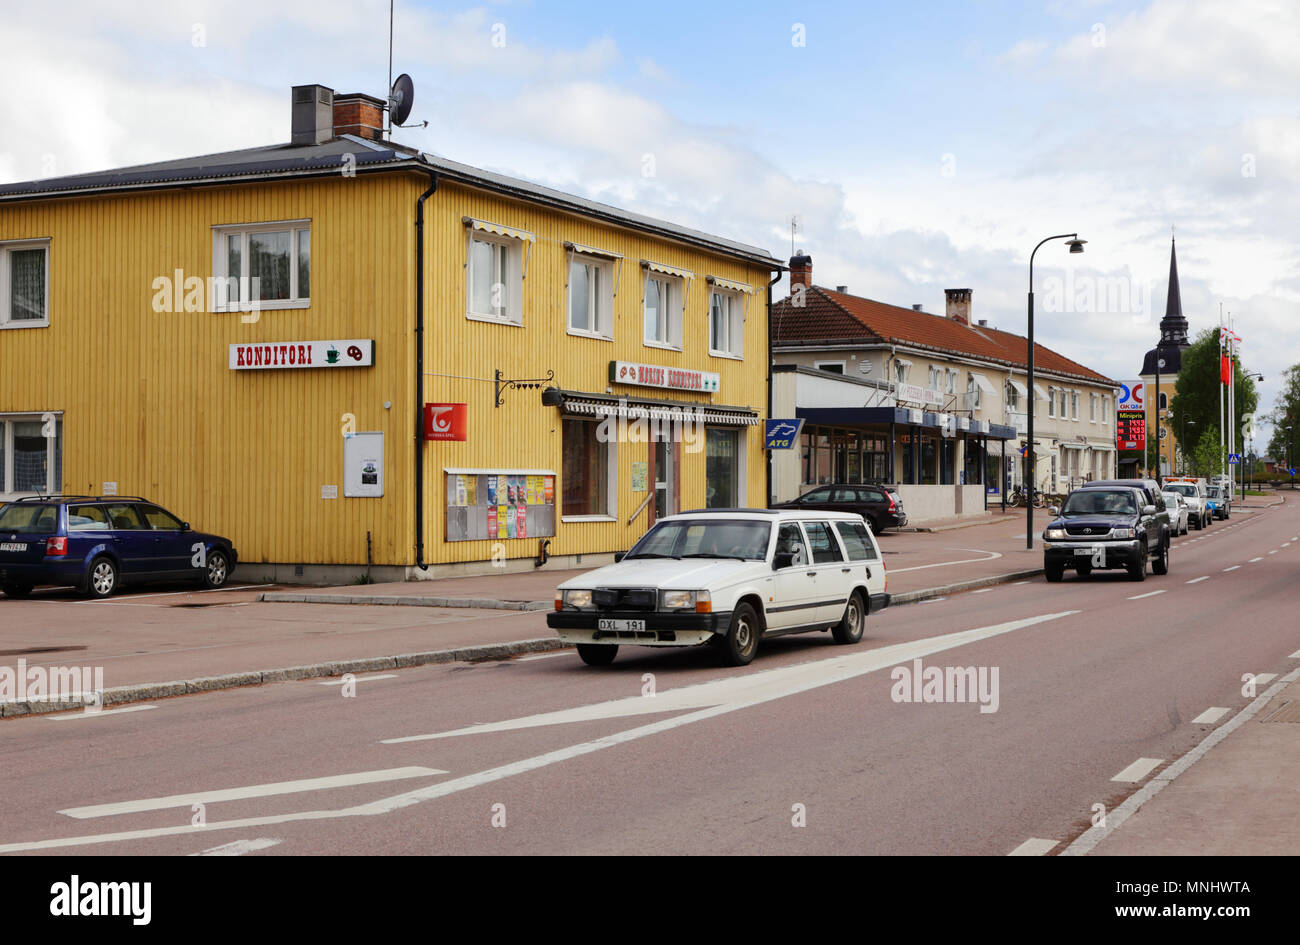 Alvdalen, Sverige - Maj 27, 2013: View of the primary road with number 70 passing thrue thesmall  town Alvdalen in the Swedish province of Dalarna. - Stock Image